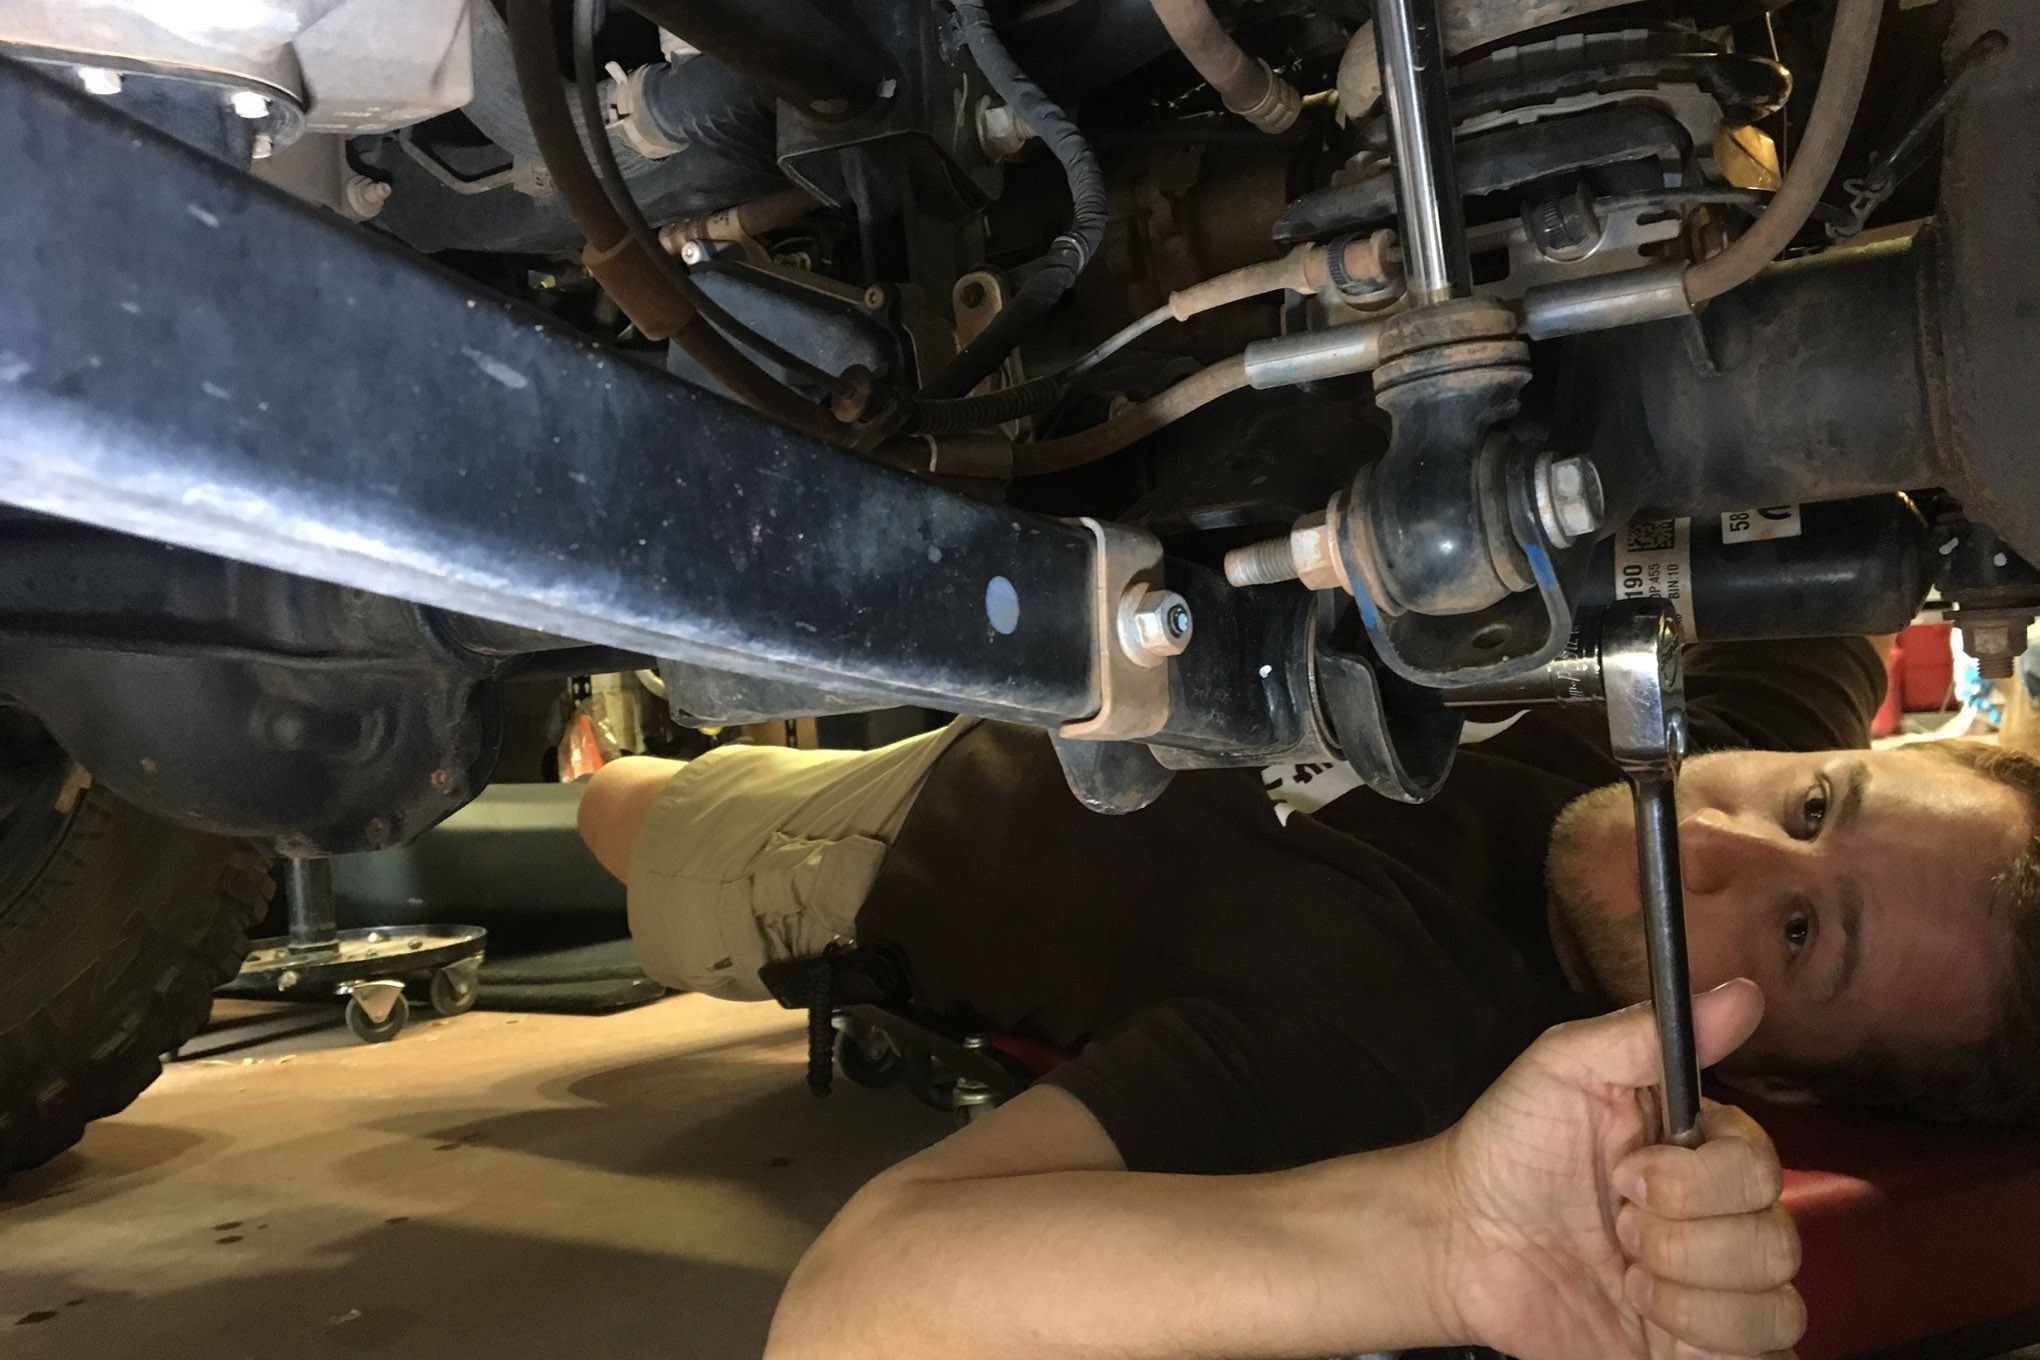 Don't just look at all of your bolts; torque them with a wrench. Sometimes things don't appear loose, but a mere quarter-turn can make a difference. Also, have a friend turn the steering wheel back and forth while you observe the bushing movement on track bars, control arms, and all steering components.